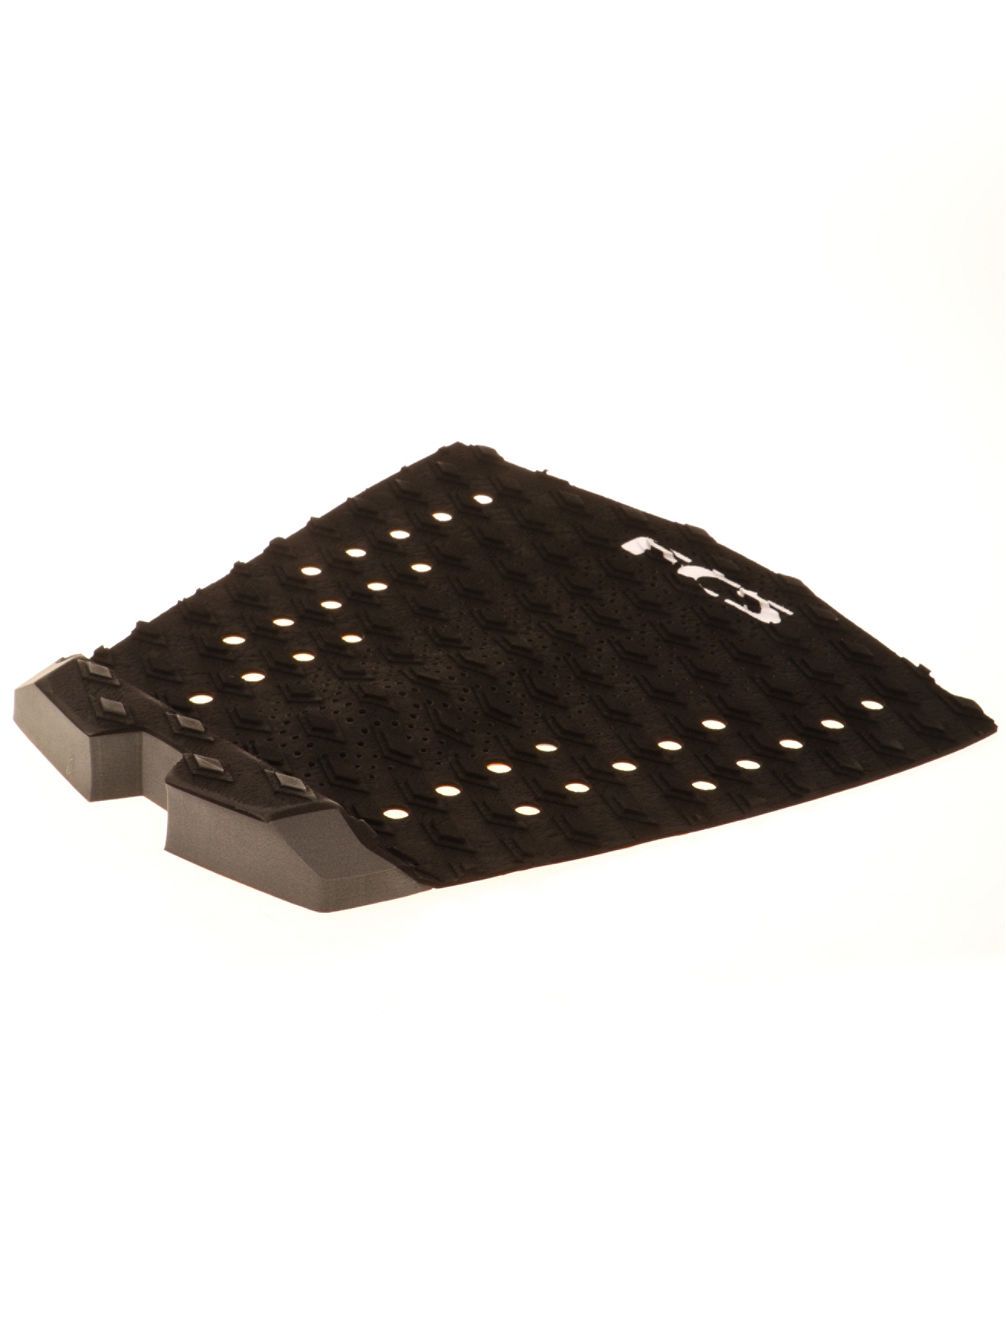 T-1 Black/Charcoal Traction Tail Pad